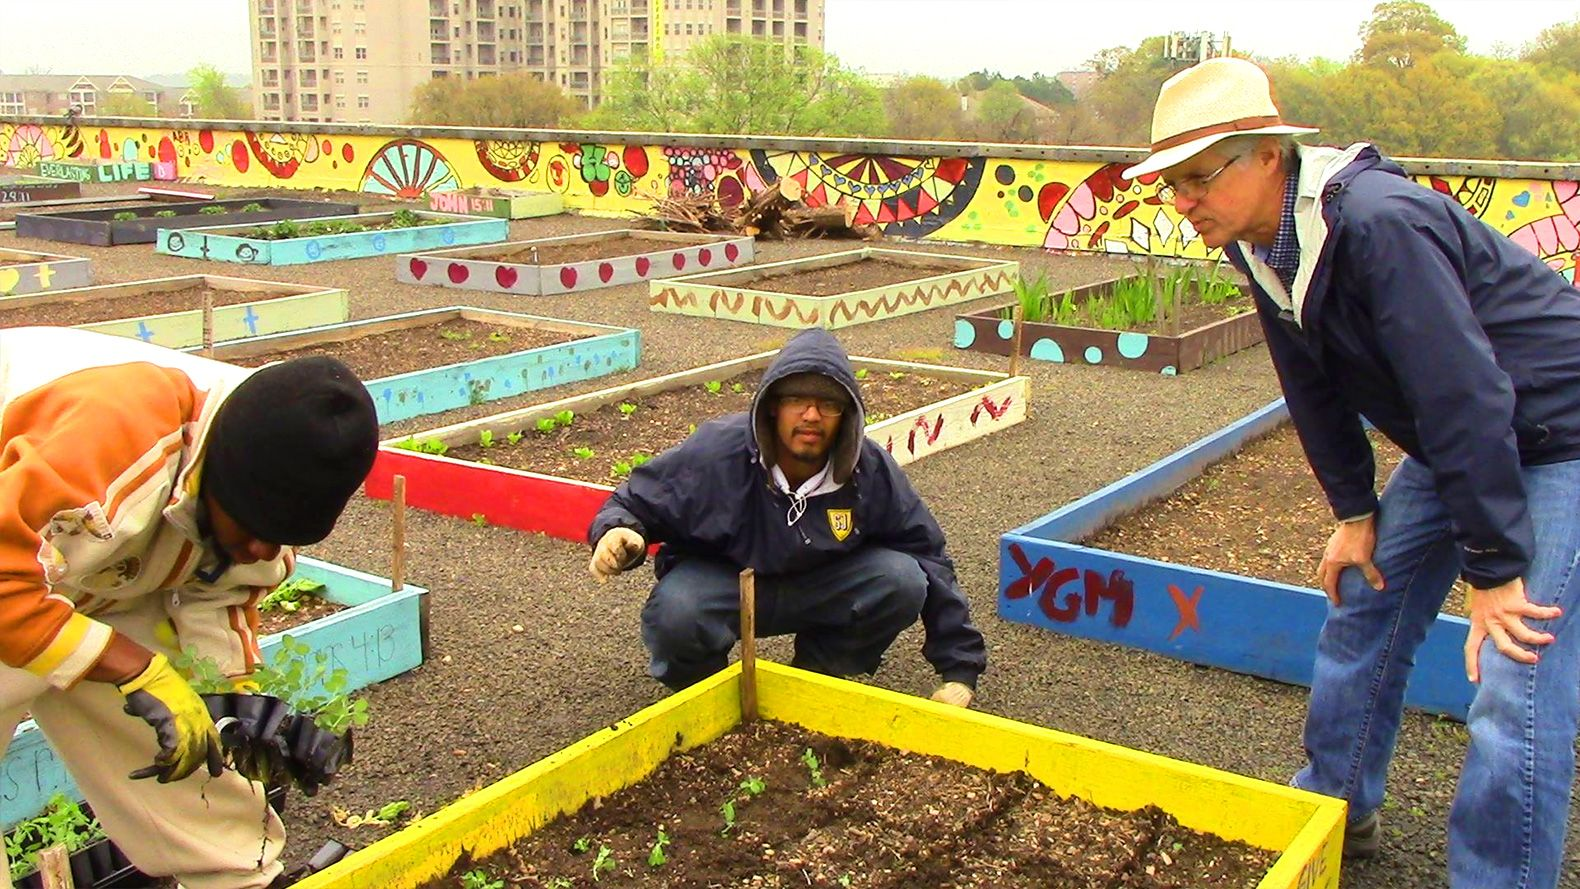 Homeless Folks Help Feed Their Entire Shelter With This Flourishing Rooftop Garden Homeless Shelter Ideas Rooftop Garden Homeless Shelter Design